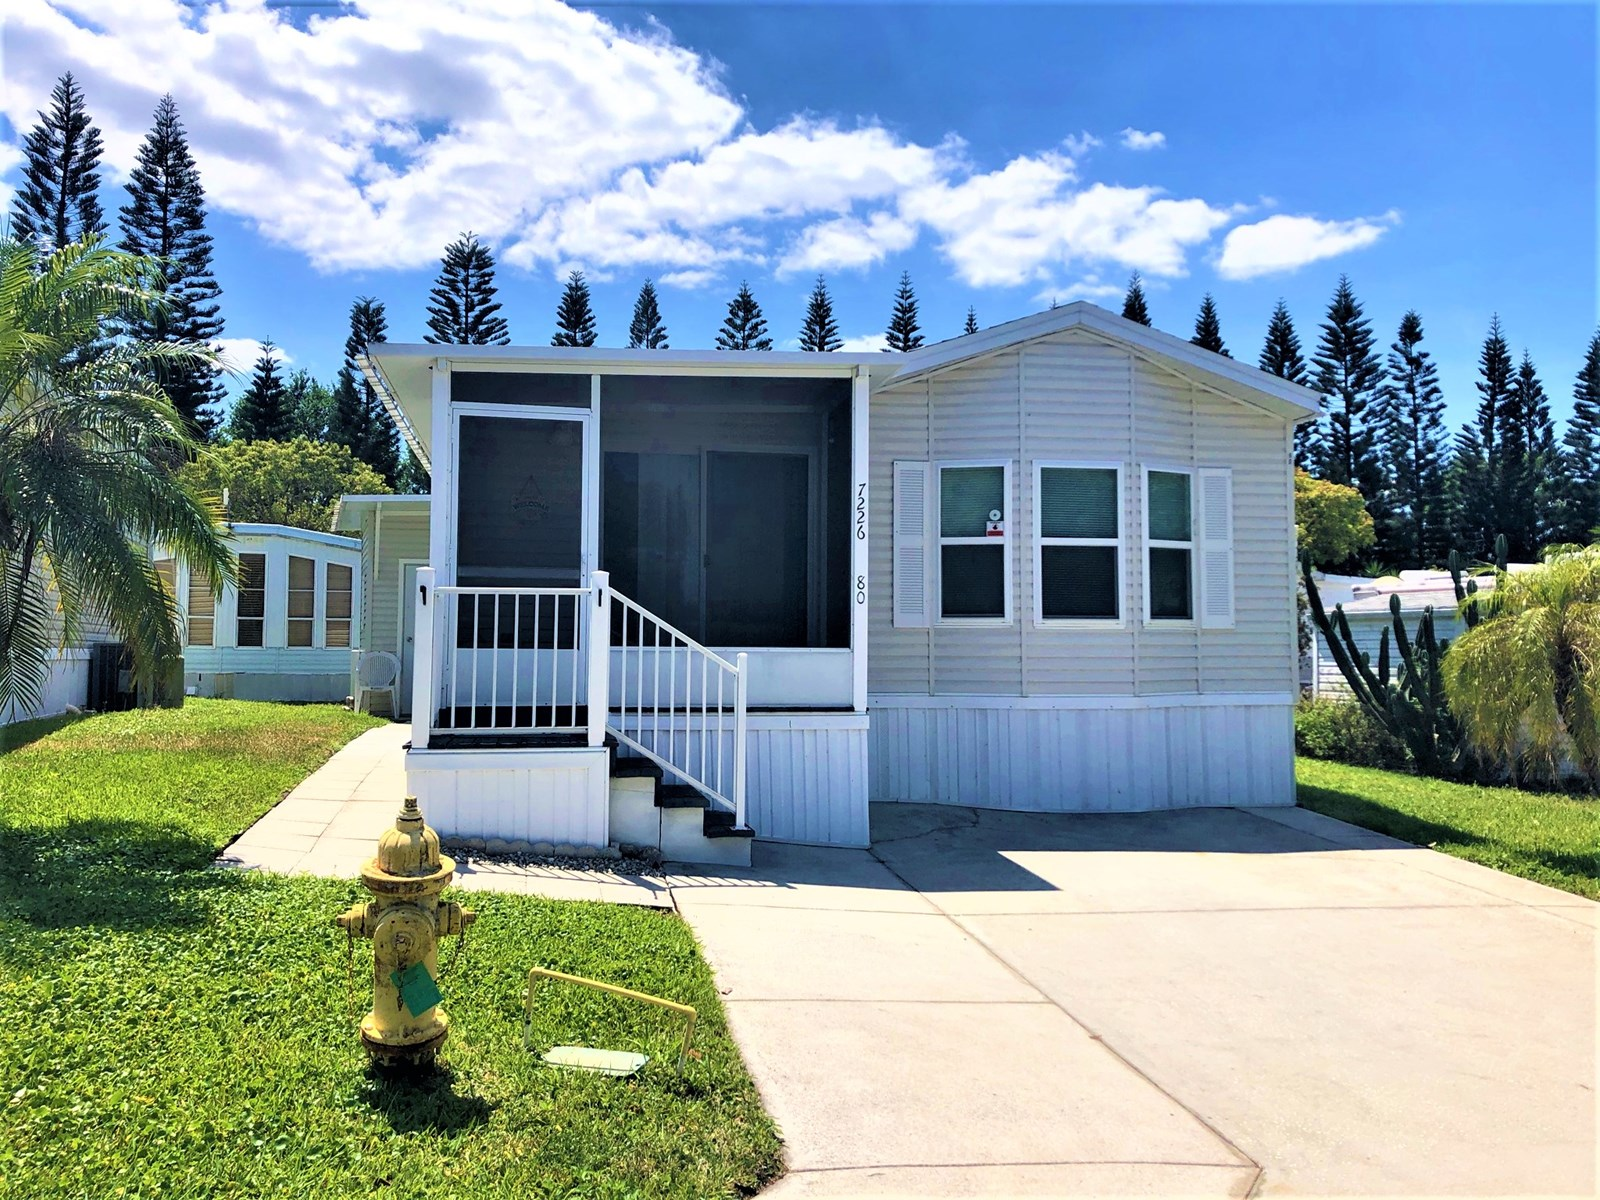 55+COMMUNITY, 2/1 MOBILE HOME FOR SALE, CENTRAL FL RV RESORT